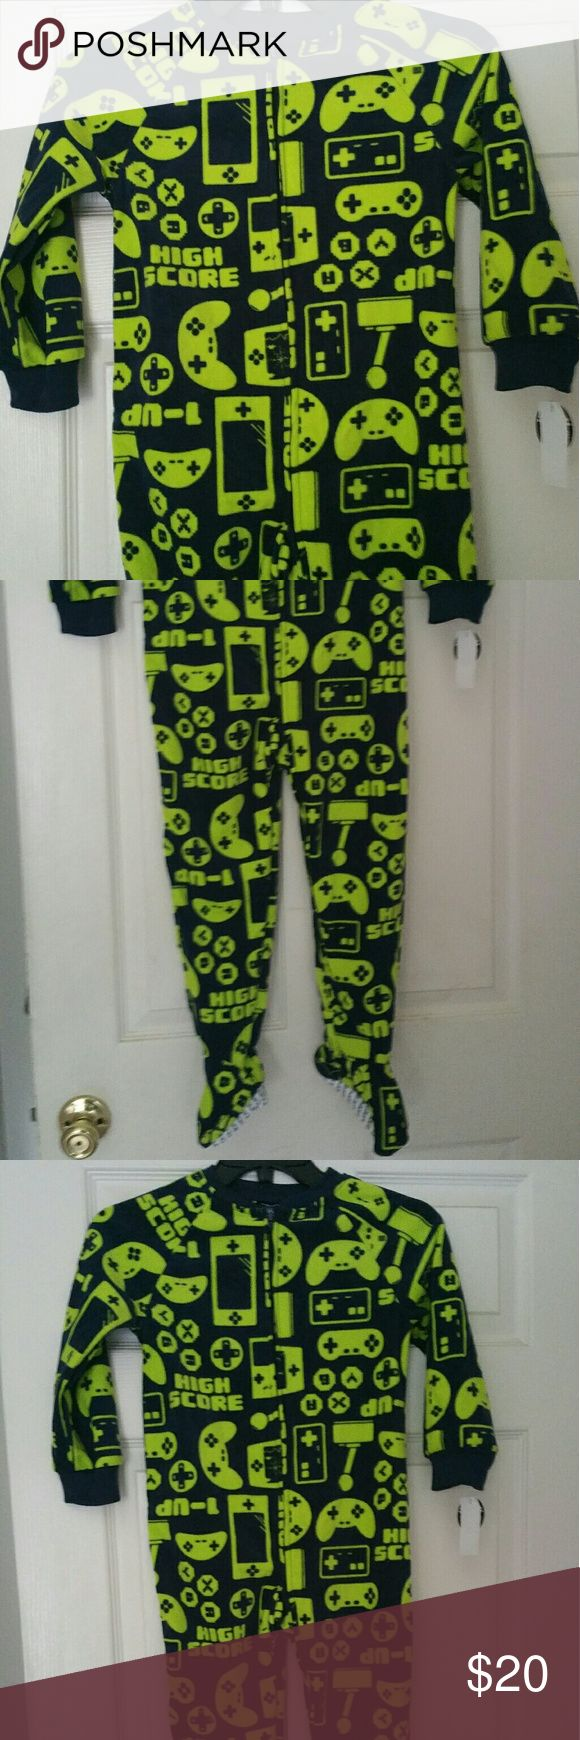 PRICE DROP!! BOYS FOOTED BLANKET SLEEPER PAJAMAS Day or night, these boys' footed sleeper pajamas will keep him cozy from head to toe. Made from soft microfleece, these one-piece PJs are not only warm, they also feature a colorful  print & Flame Resistant. A full-length zipper makes dressing easy, while textured logo grips on the attached feet prevent accidental slips. Joe Boxer Pajamas